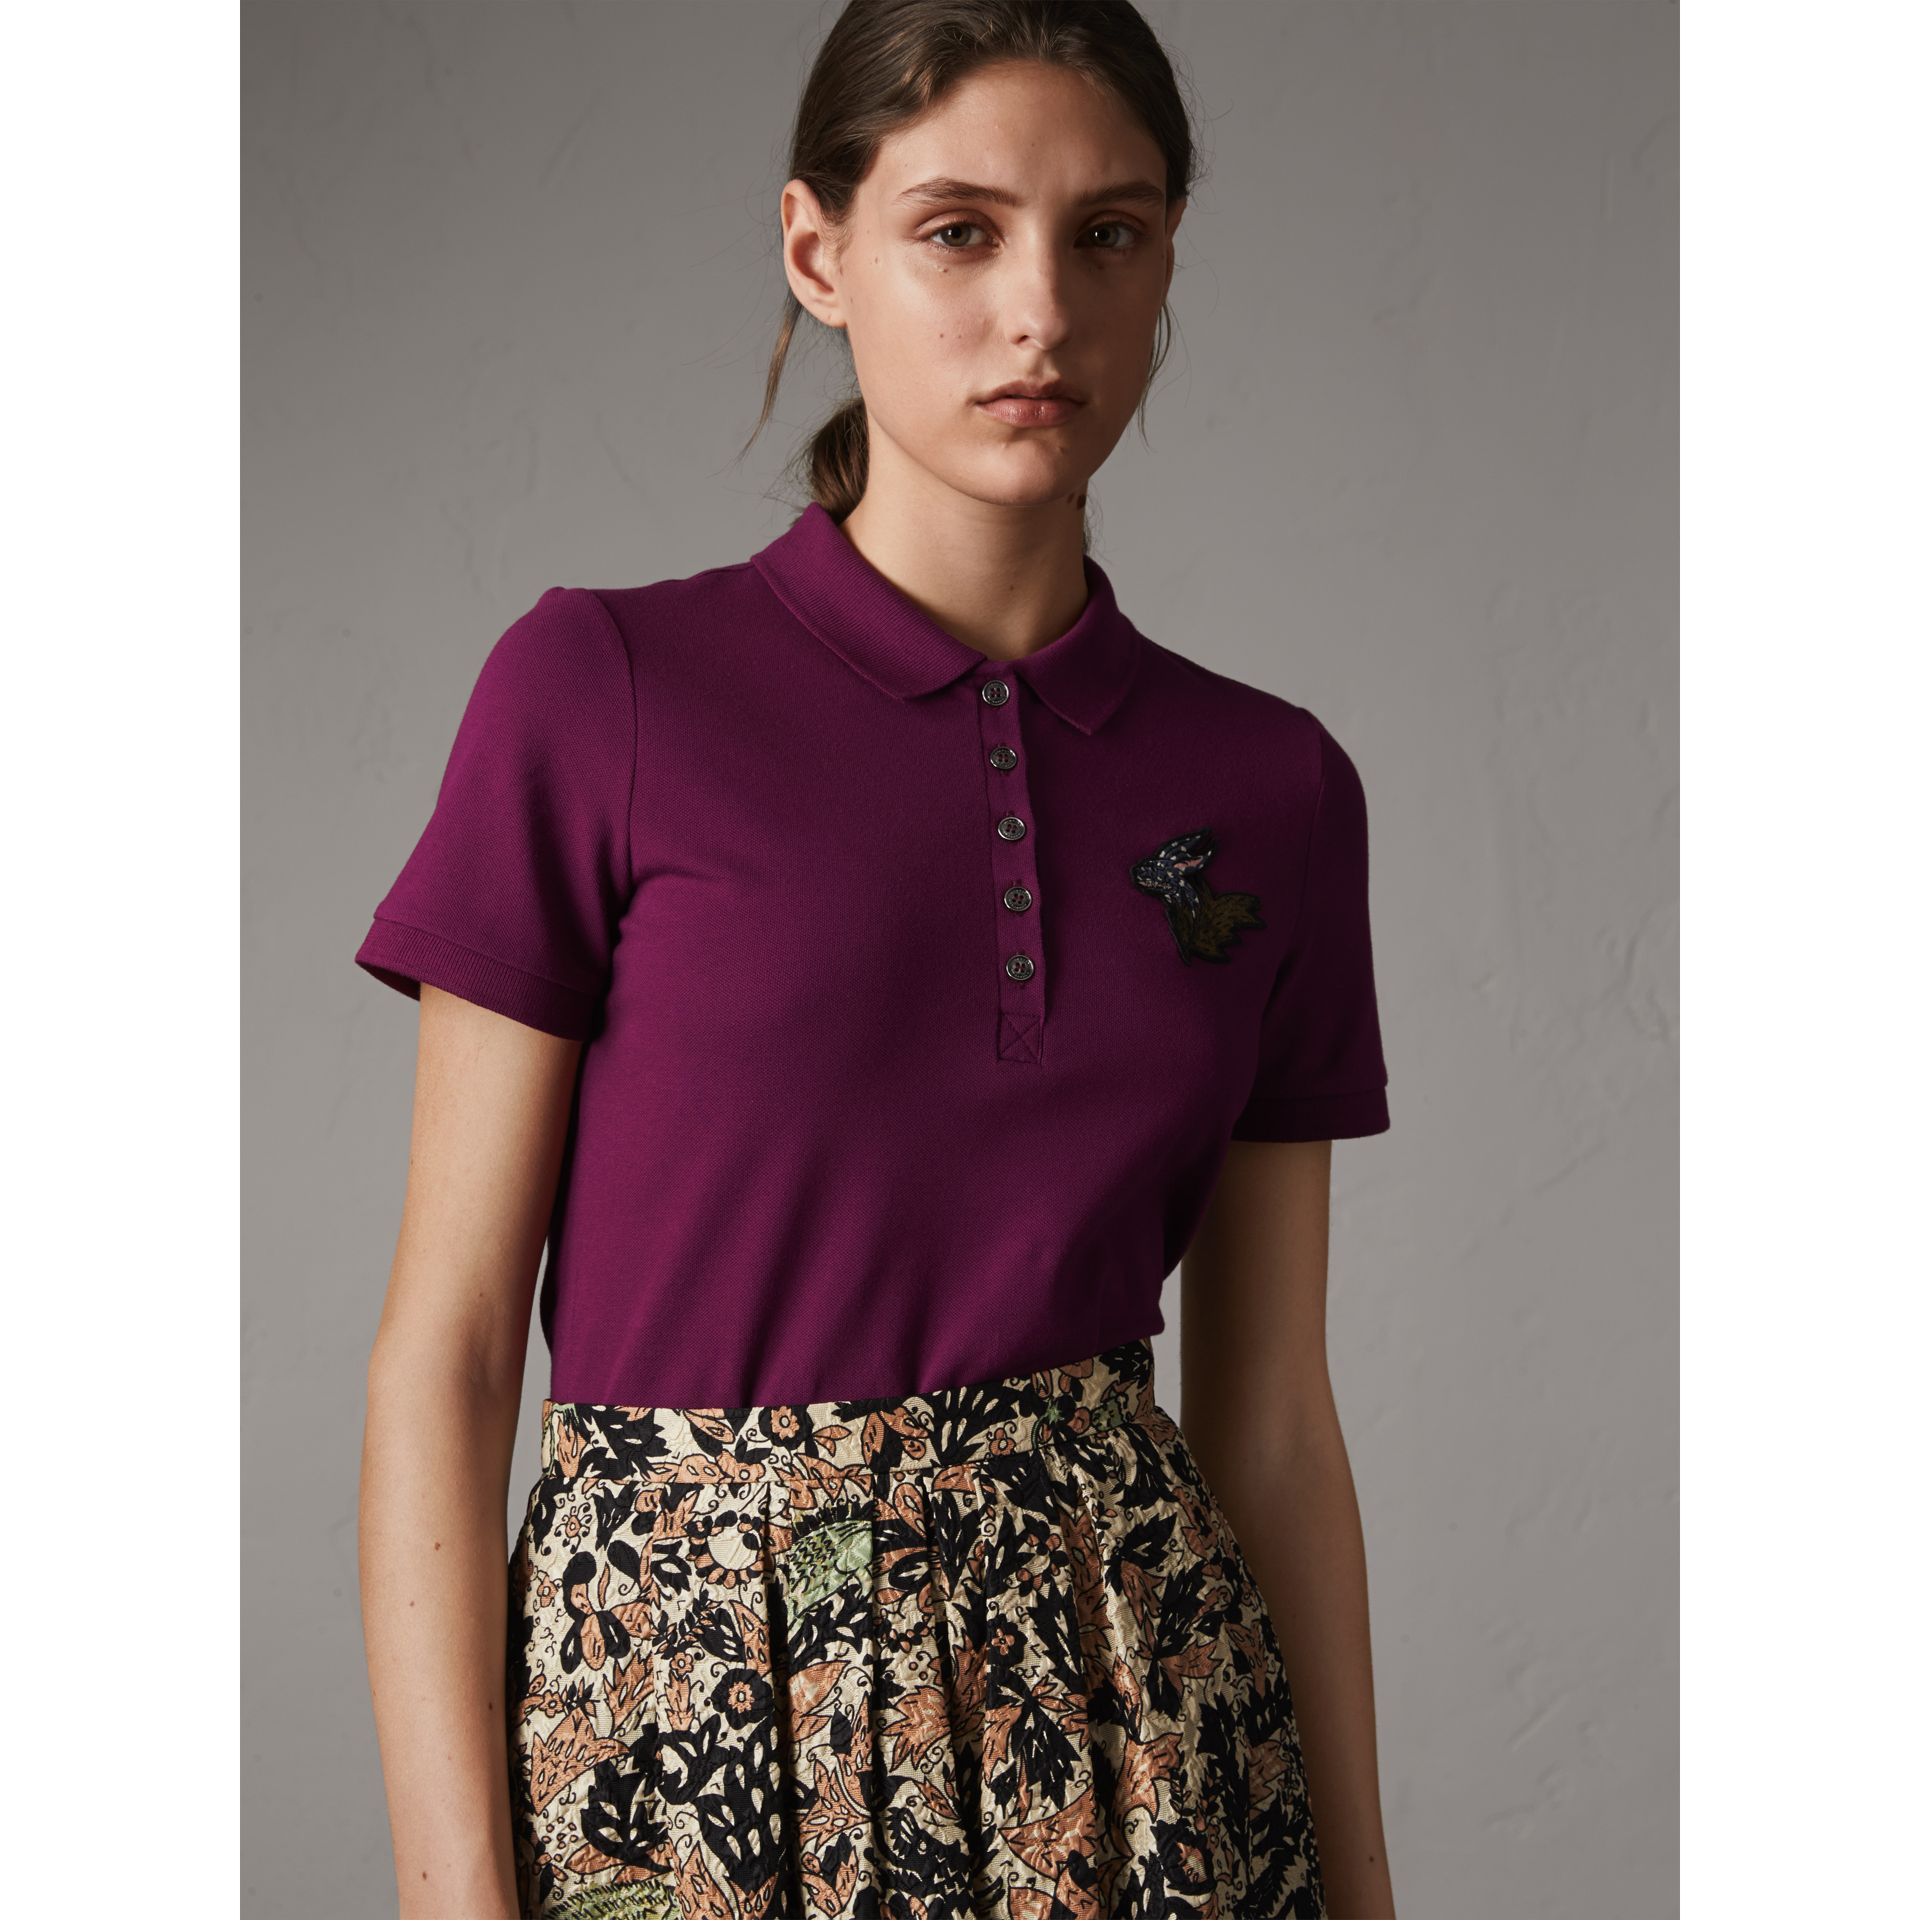 Beasts Motif Stretch Cotton Piqué Polo Shirt in Magenta Pink - Women | Burberry - gallery image 1